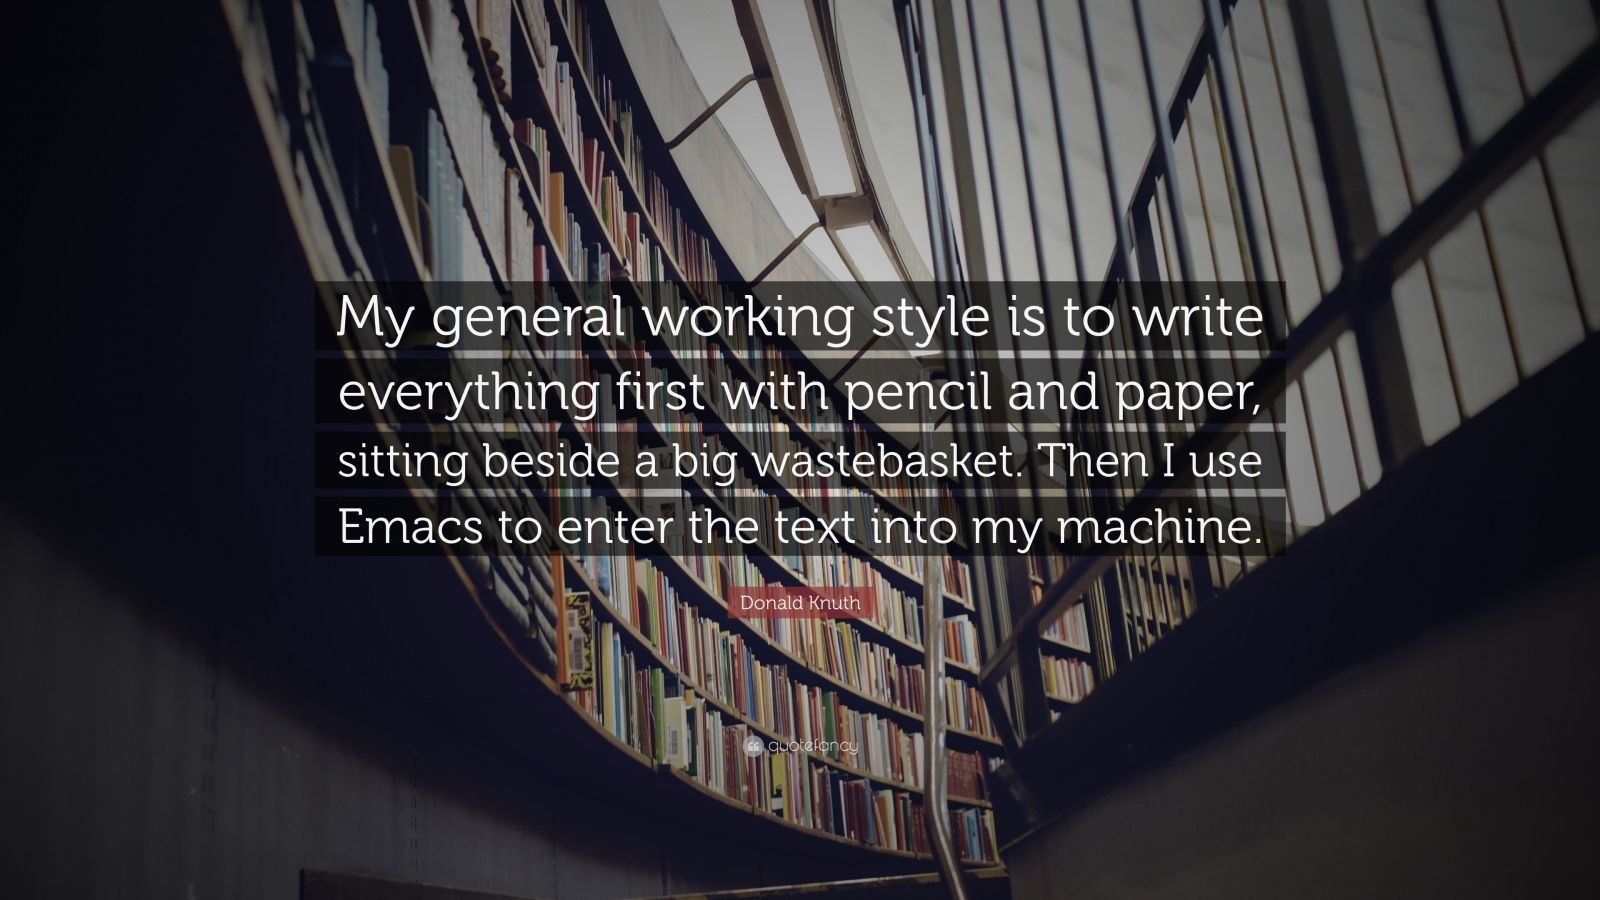 """Donald Knuth Quote: """"My general working style is to write everything first with pencil and paper, sitting beside a big wastebasket. Then I use Emacs to enter the text into my machine."""""""